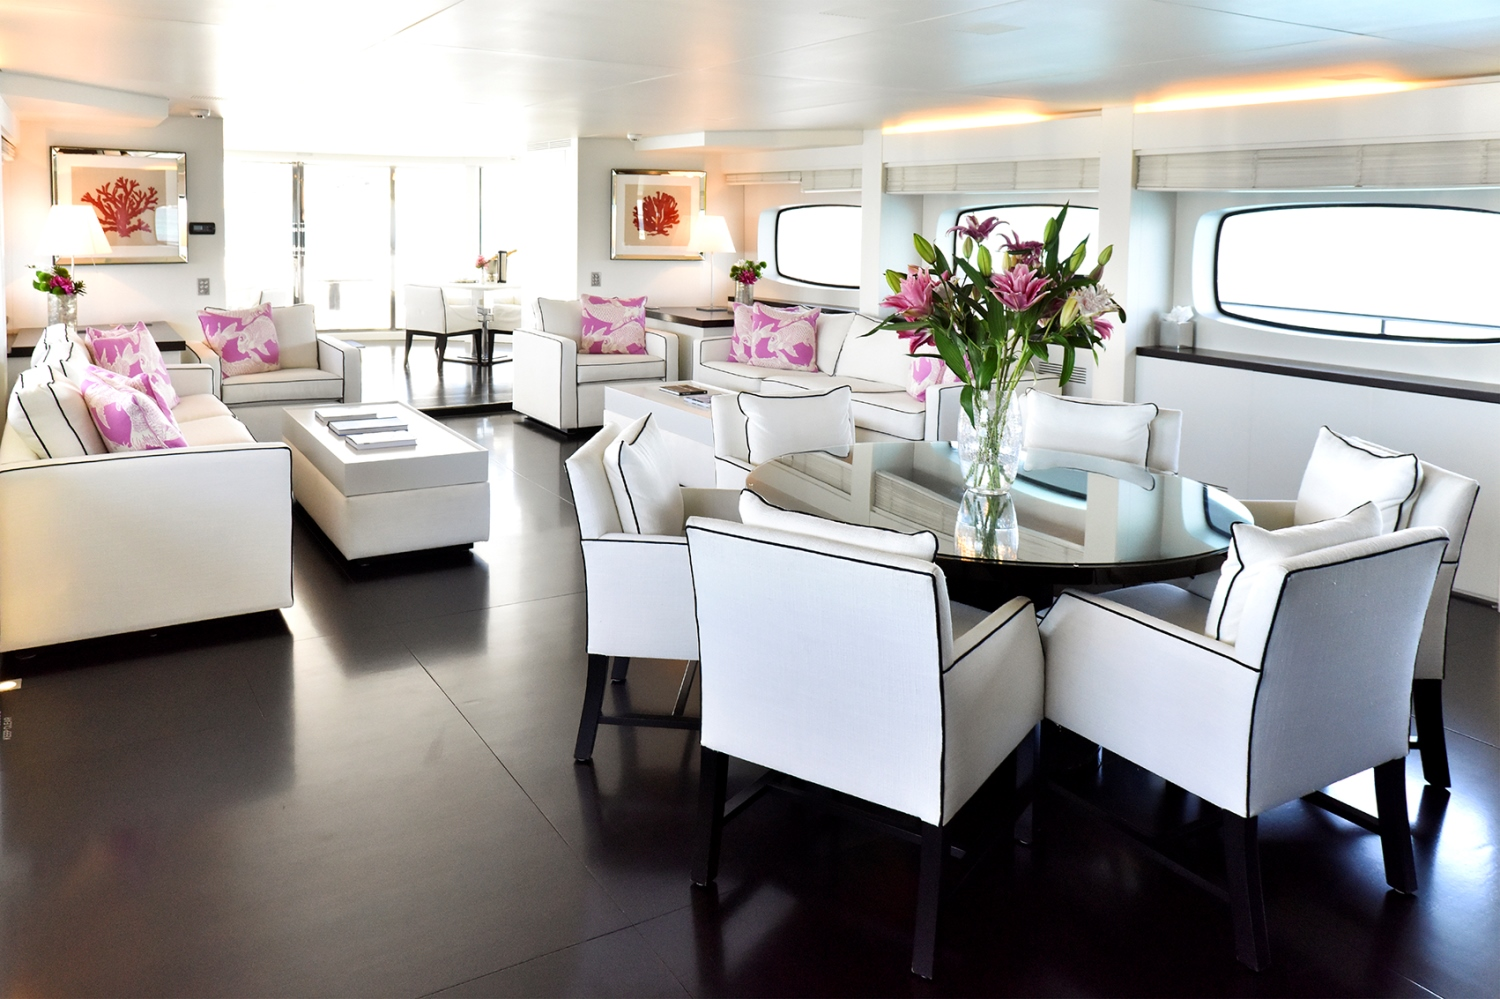 INFINITY PACIFIC - Main Salon looking aft